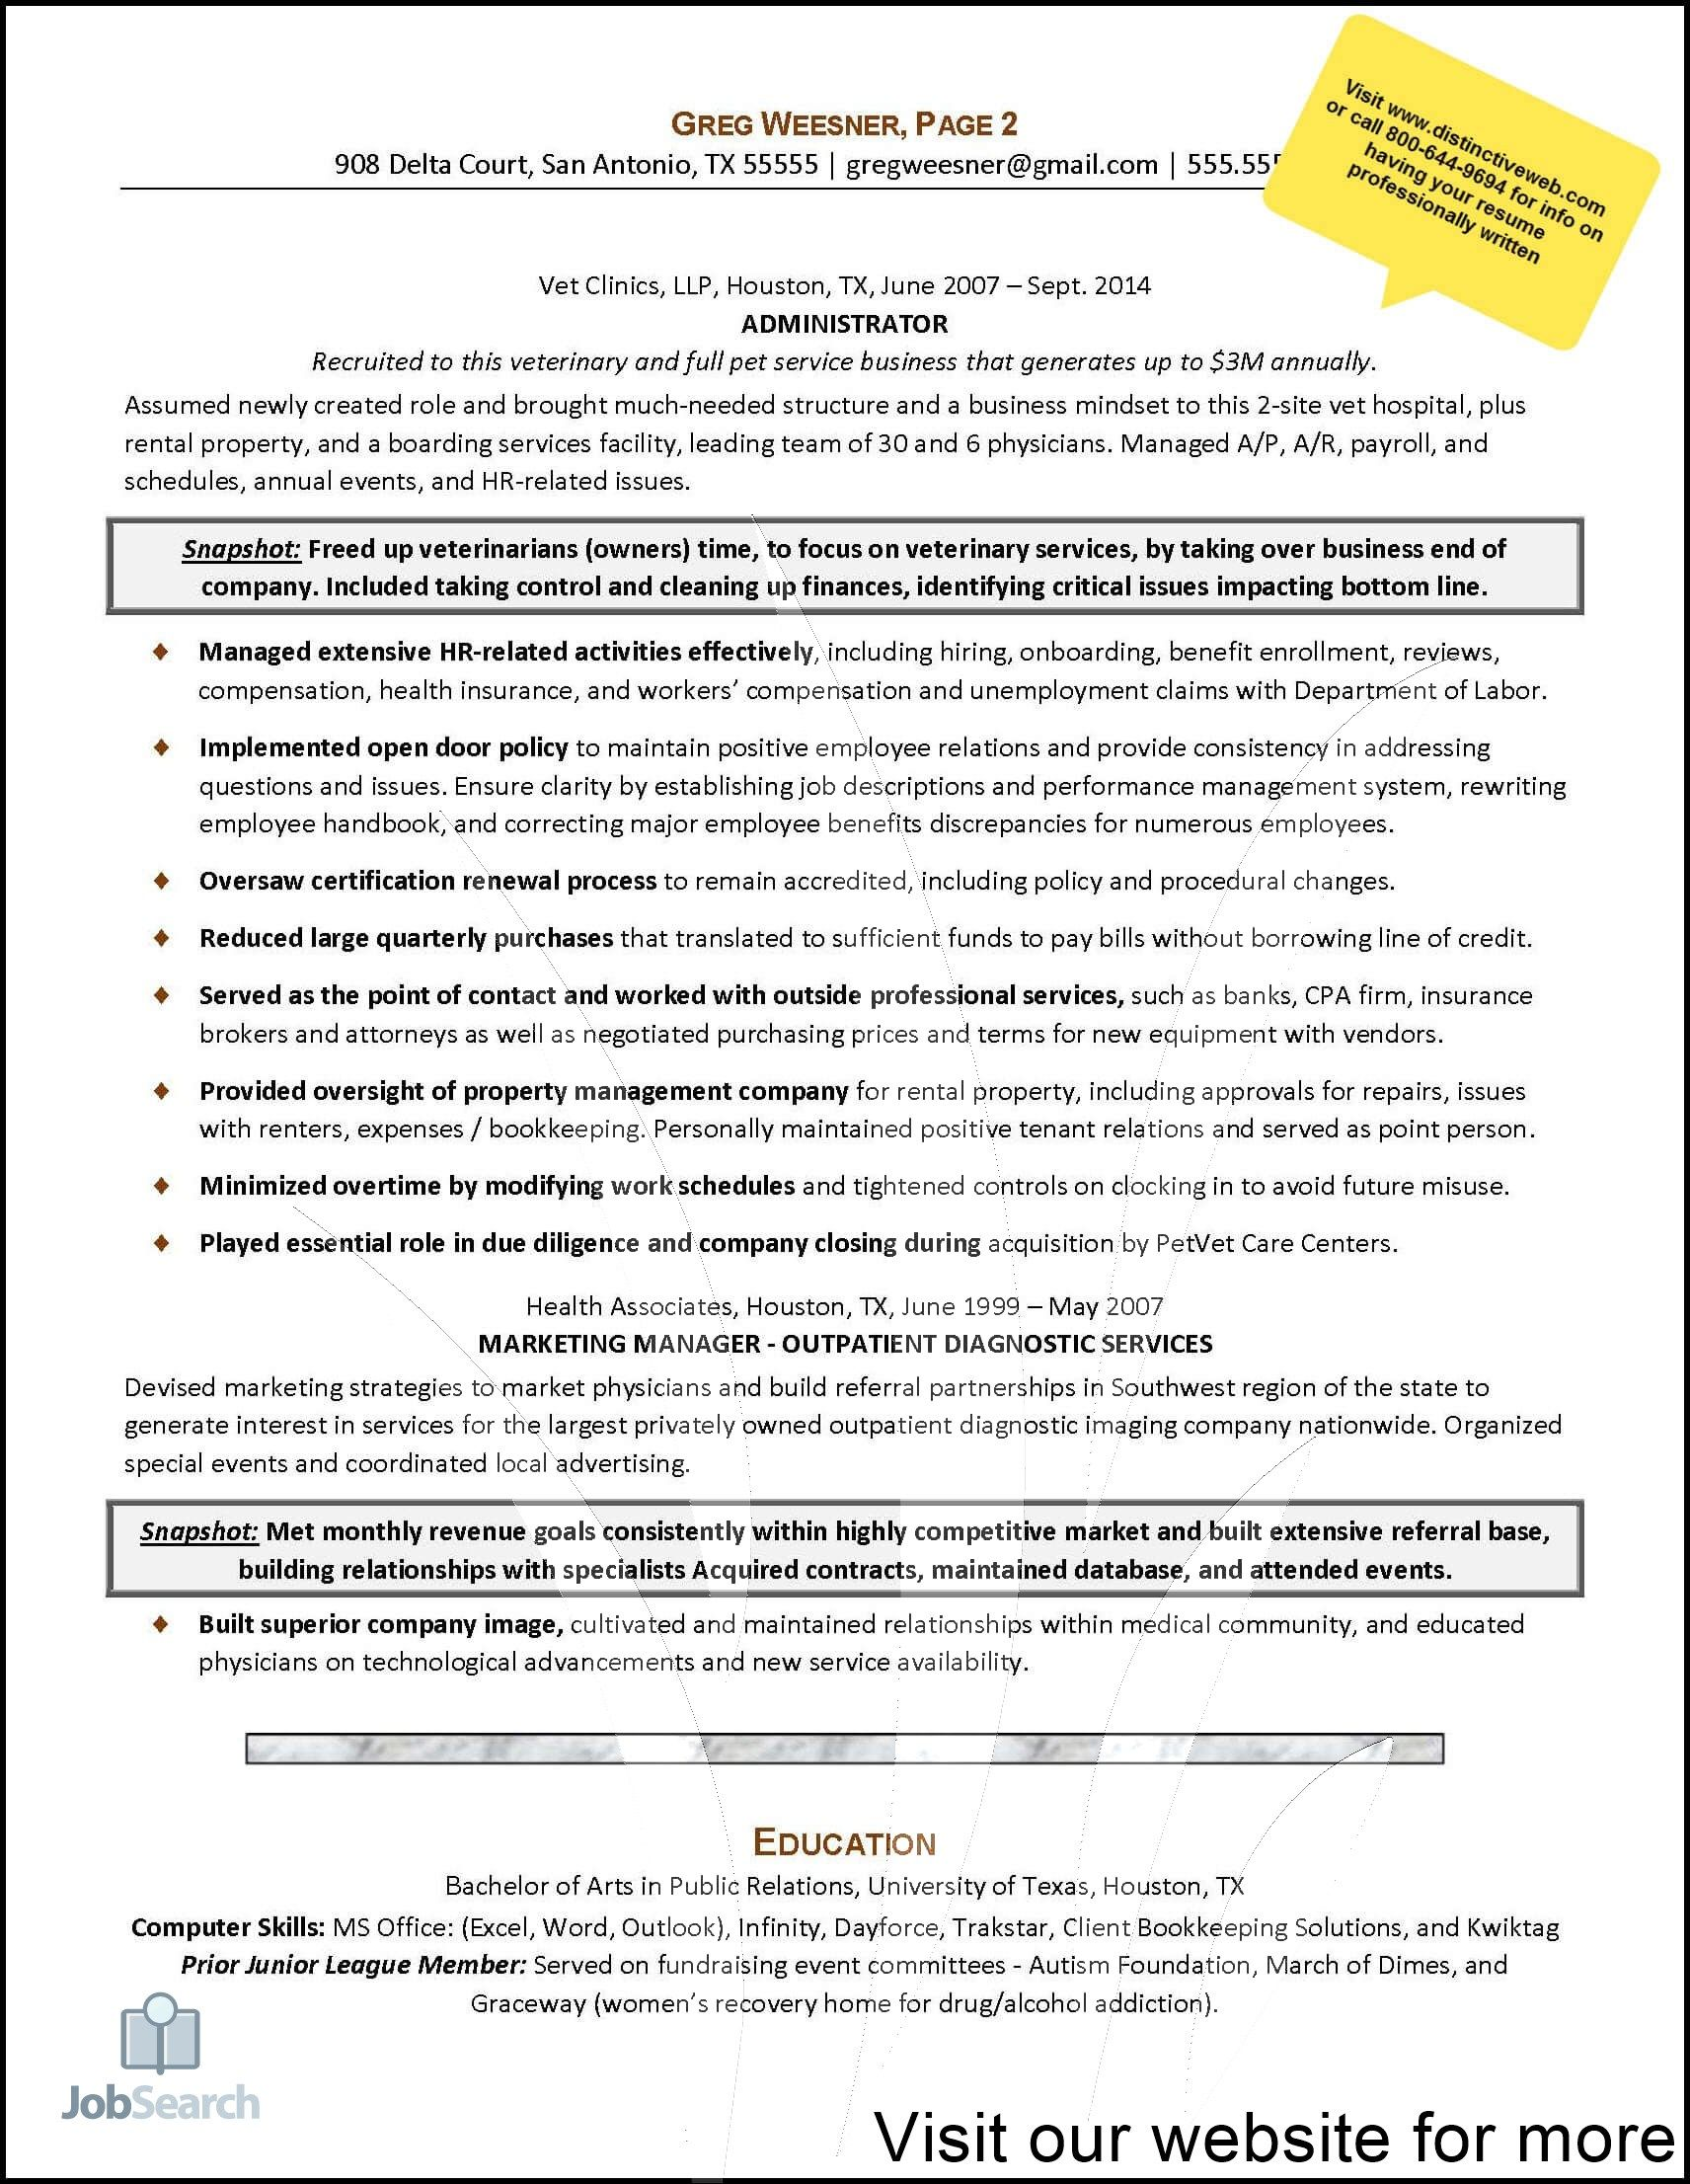 resume examples for jobs professional in 2020 (with images summary front office manager cv sample call center agent virtual assistant with no experience